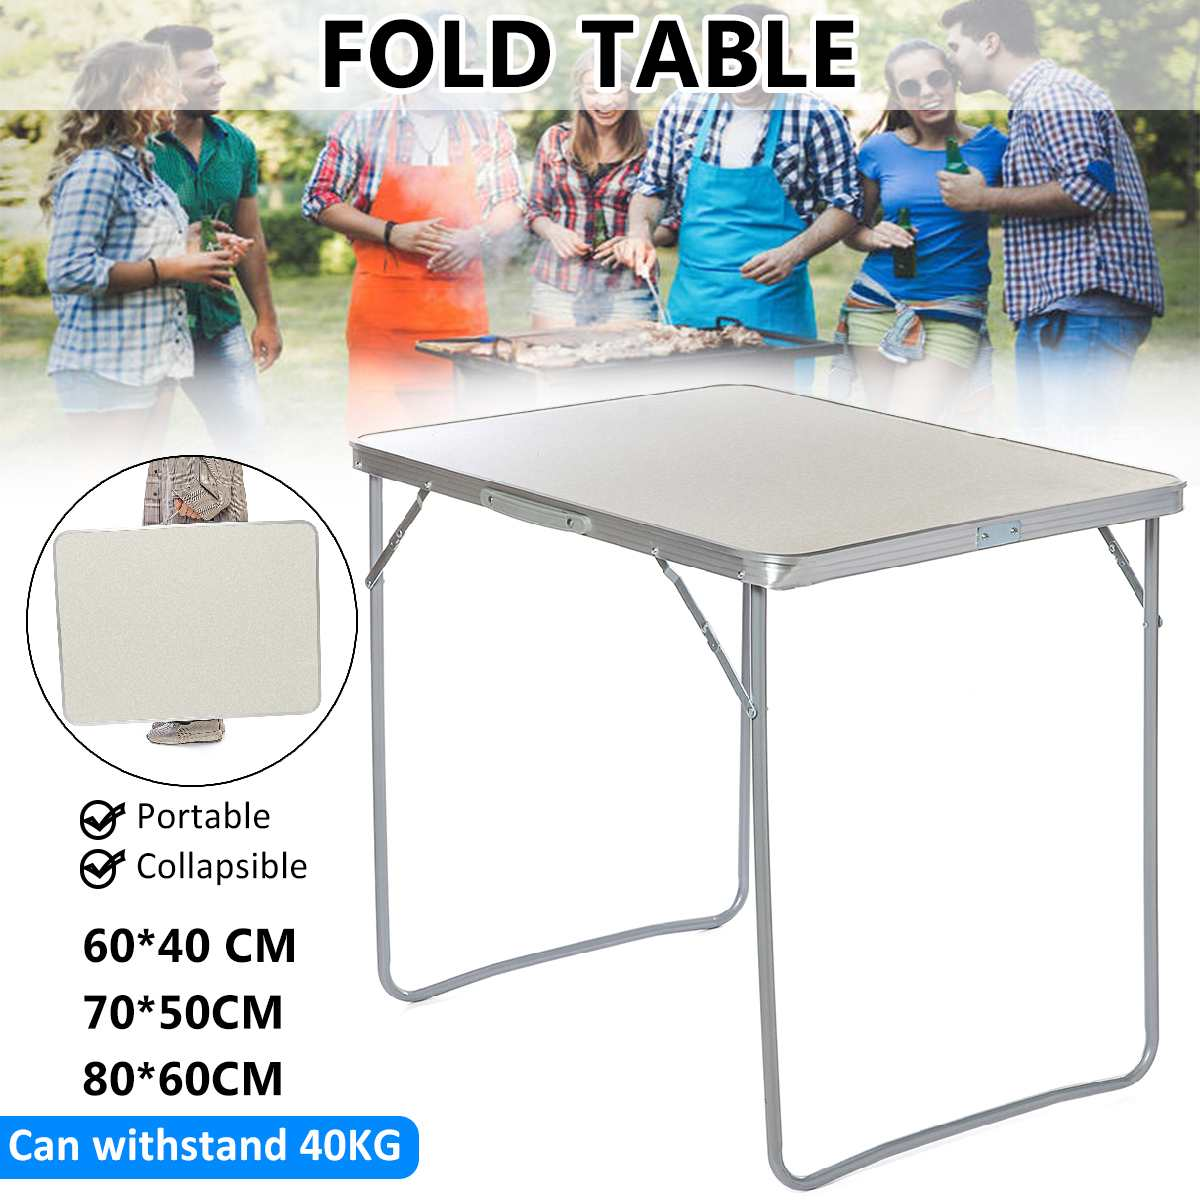 60x40cm/70x50cm/80x60cm Portable Foldable Table Camping Outdoor Furniture Computer Bed Table Picnic Aluminum Alloy Folding Desk